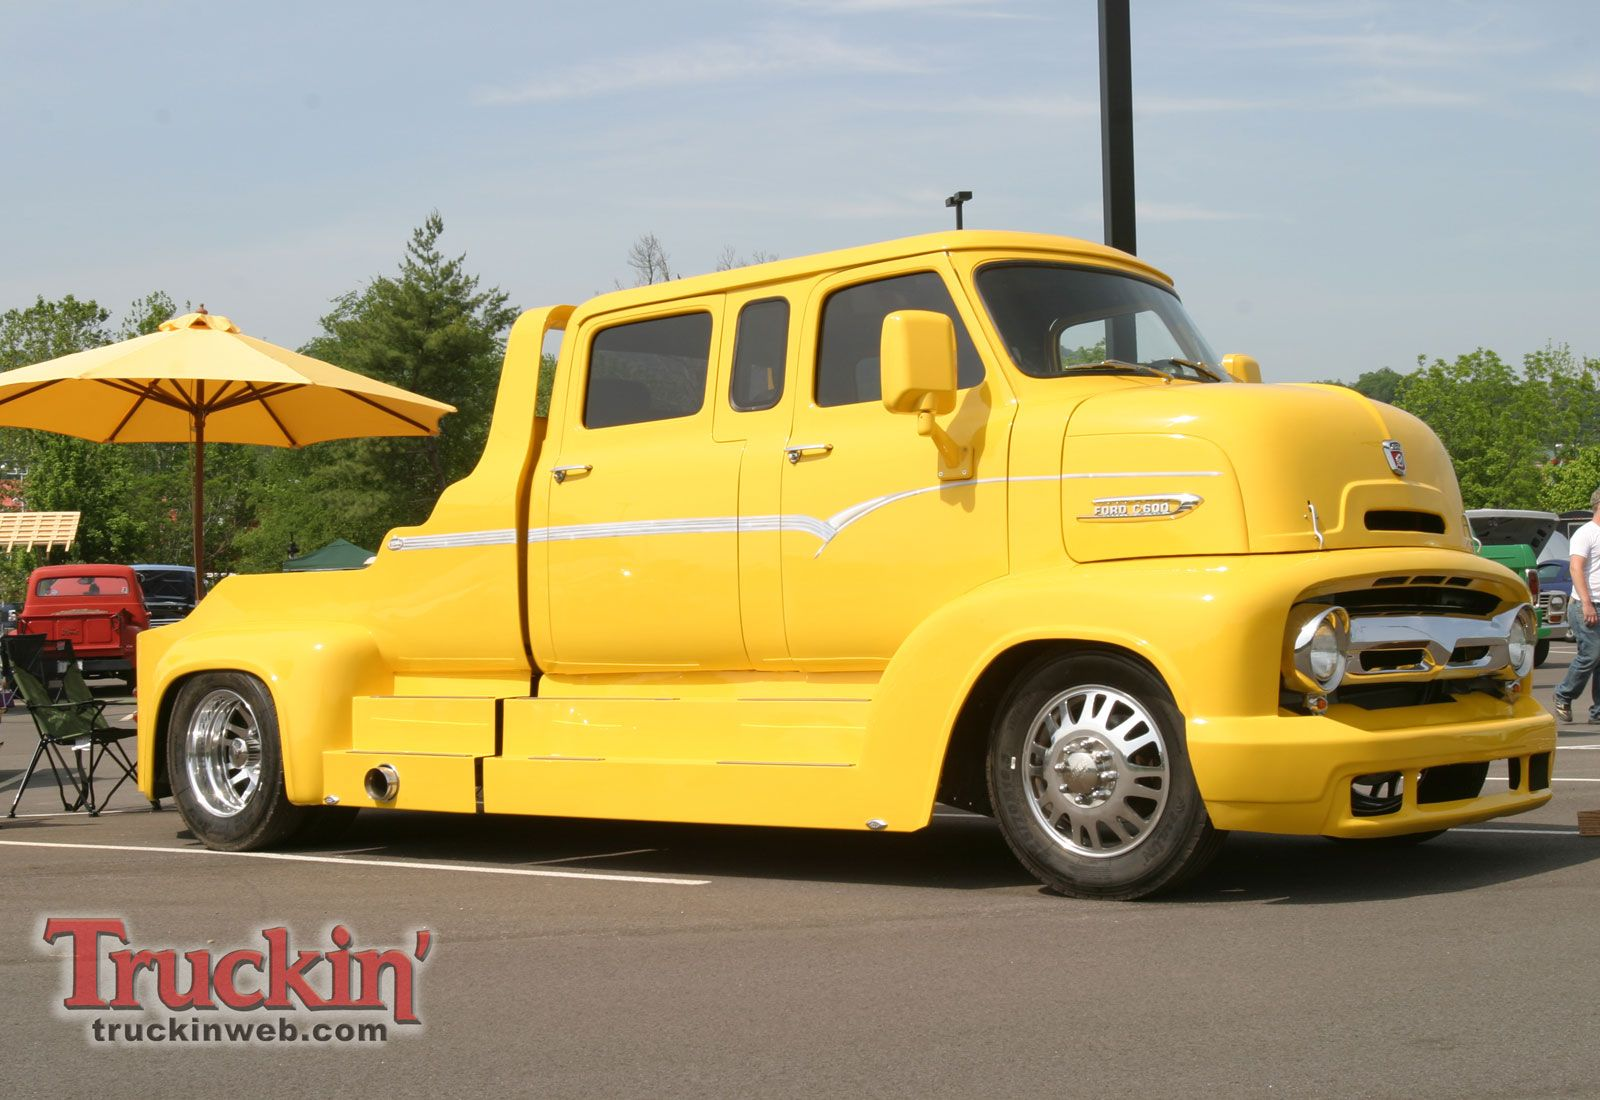 1955 Ford C600 Coe Cabover Truck Chevrolet Chevy Auto Pyle Plcm7200 Schematics Wiring View Cab Over Trucks On Pinterest